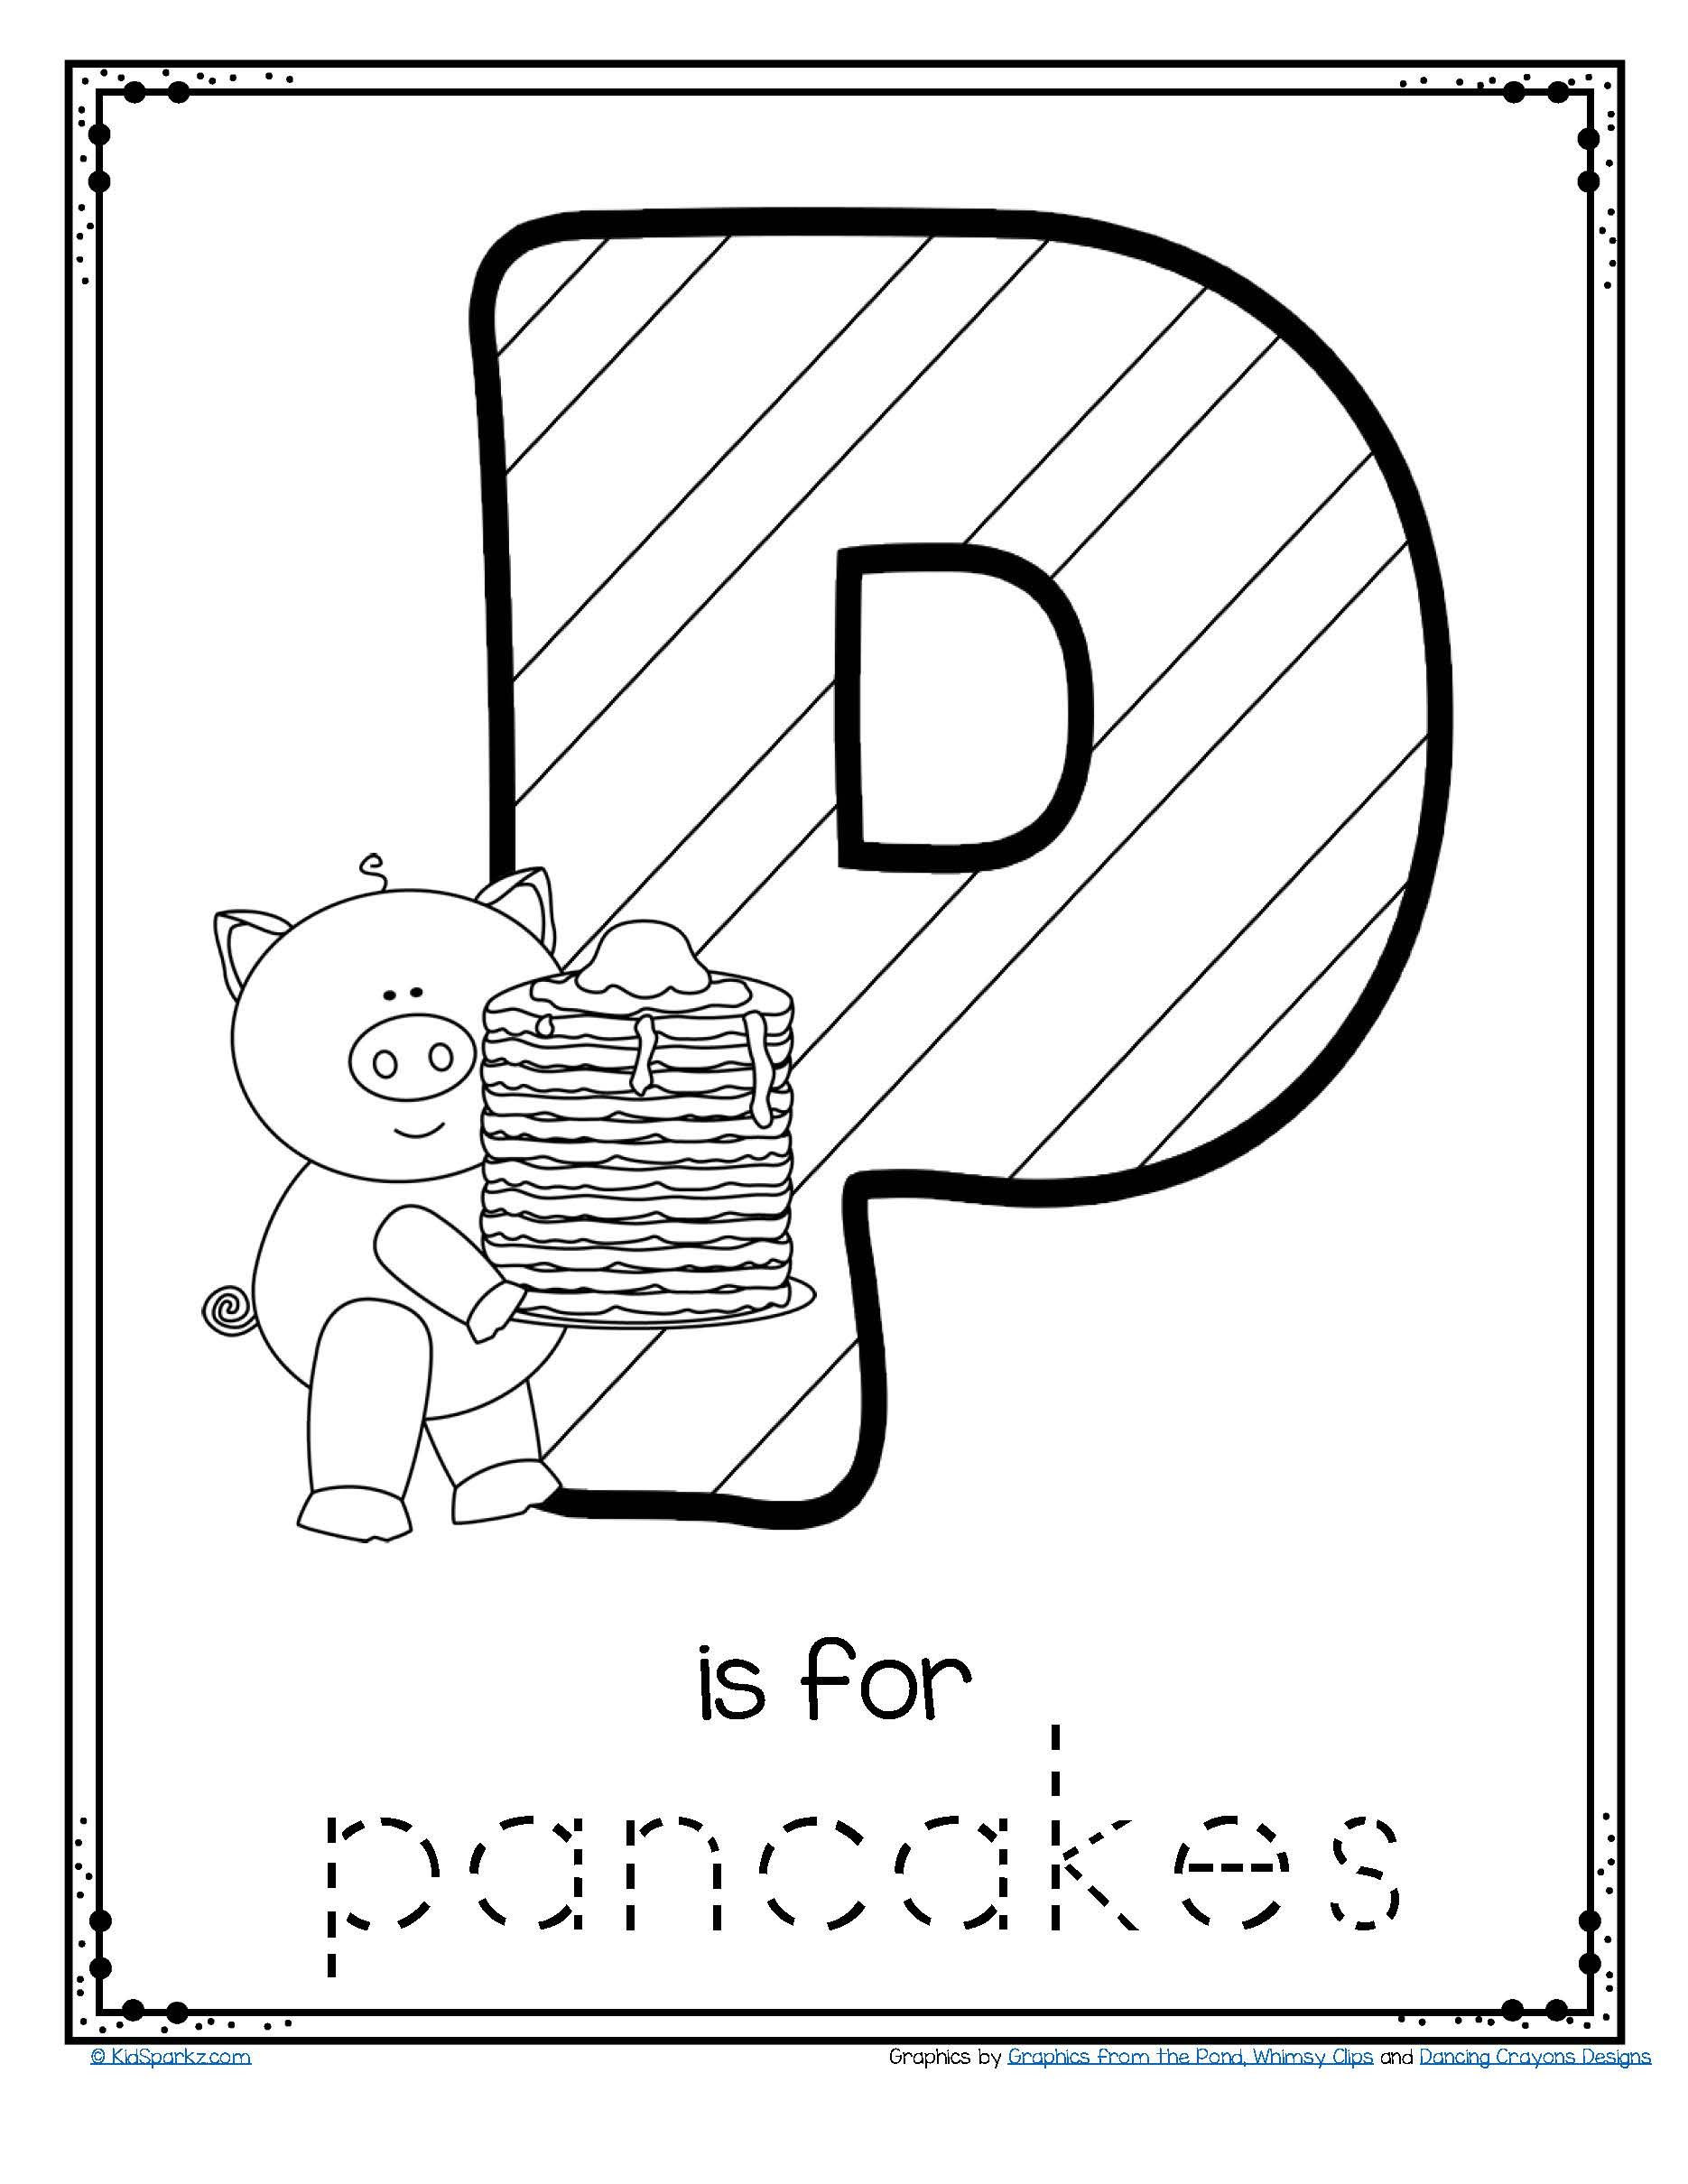 Free Printable Letter P Worksheets Pancake Day 2020 February 25th Free Letter P Trace and Color